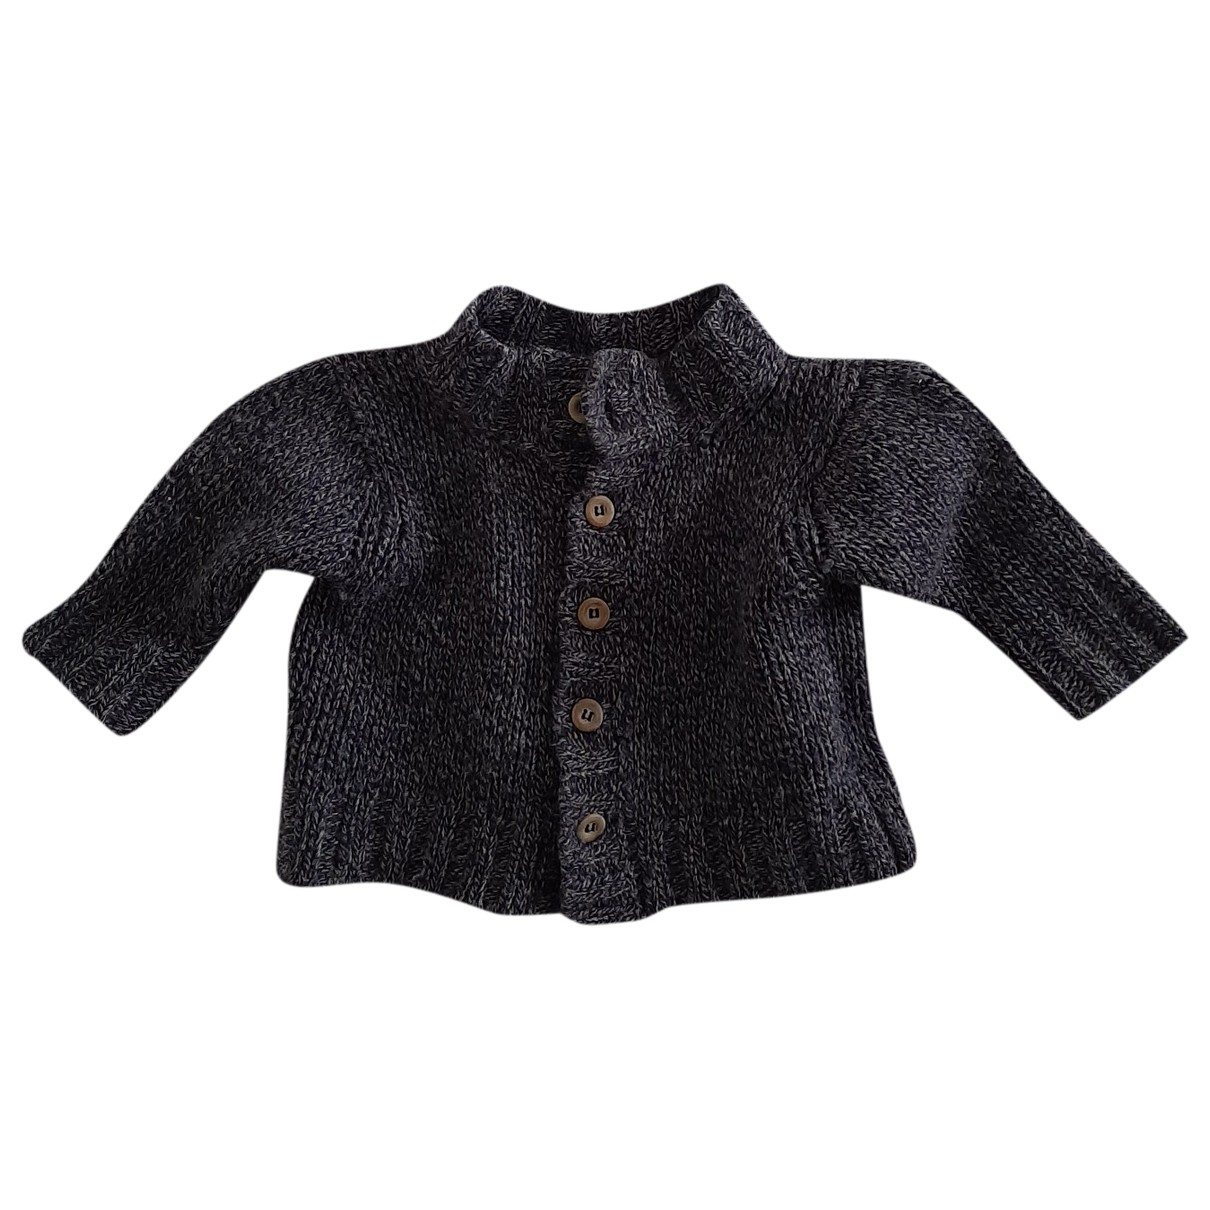 Babe & Tess \N Blue Wool Knitwear for Kids 9 months - up to 71cm FR